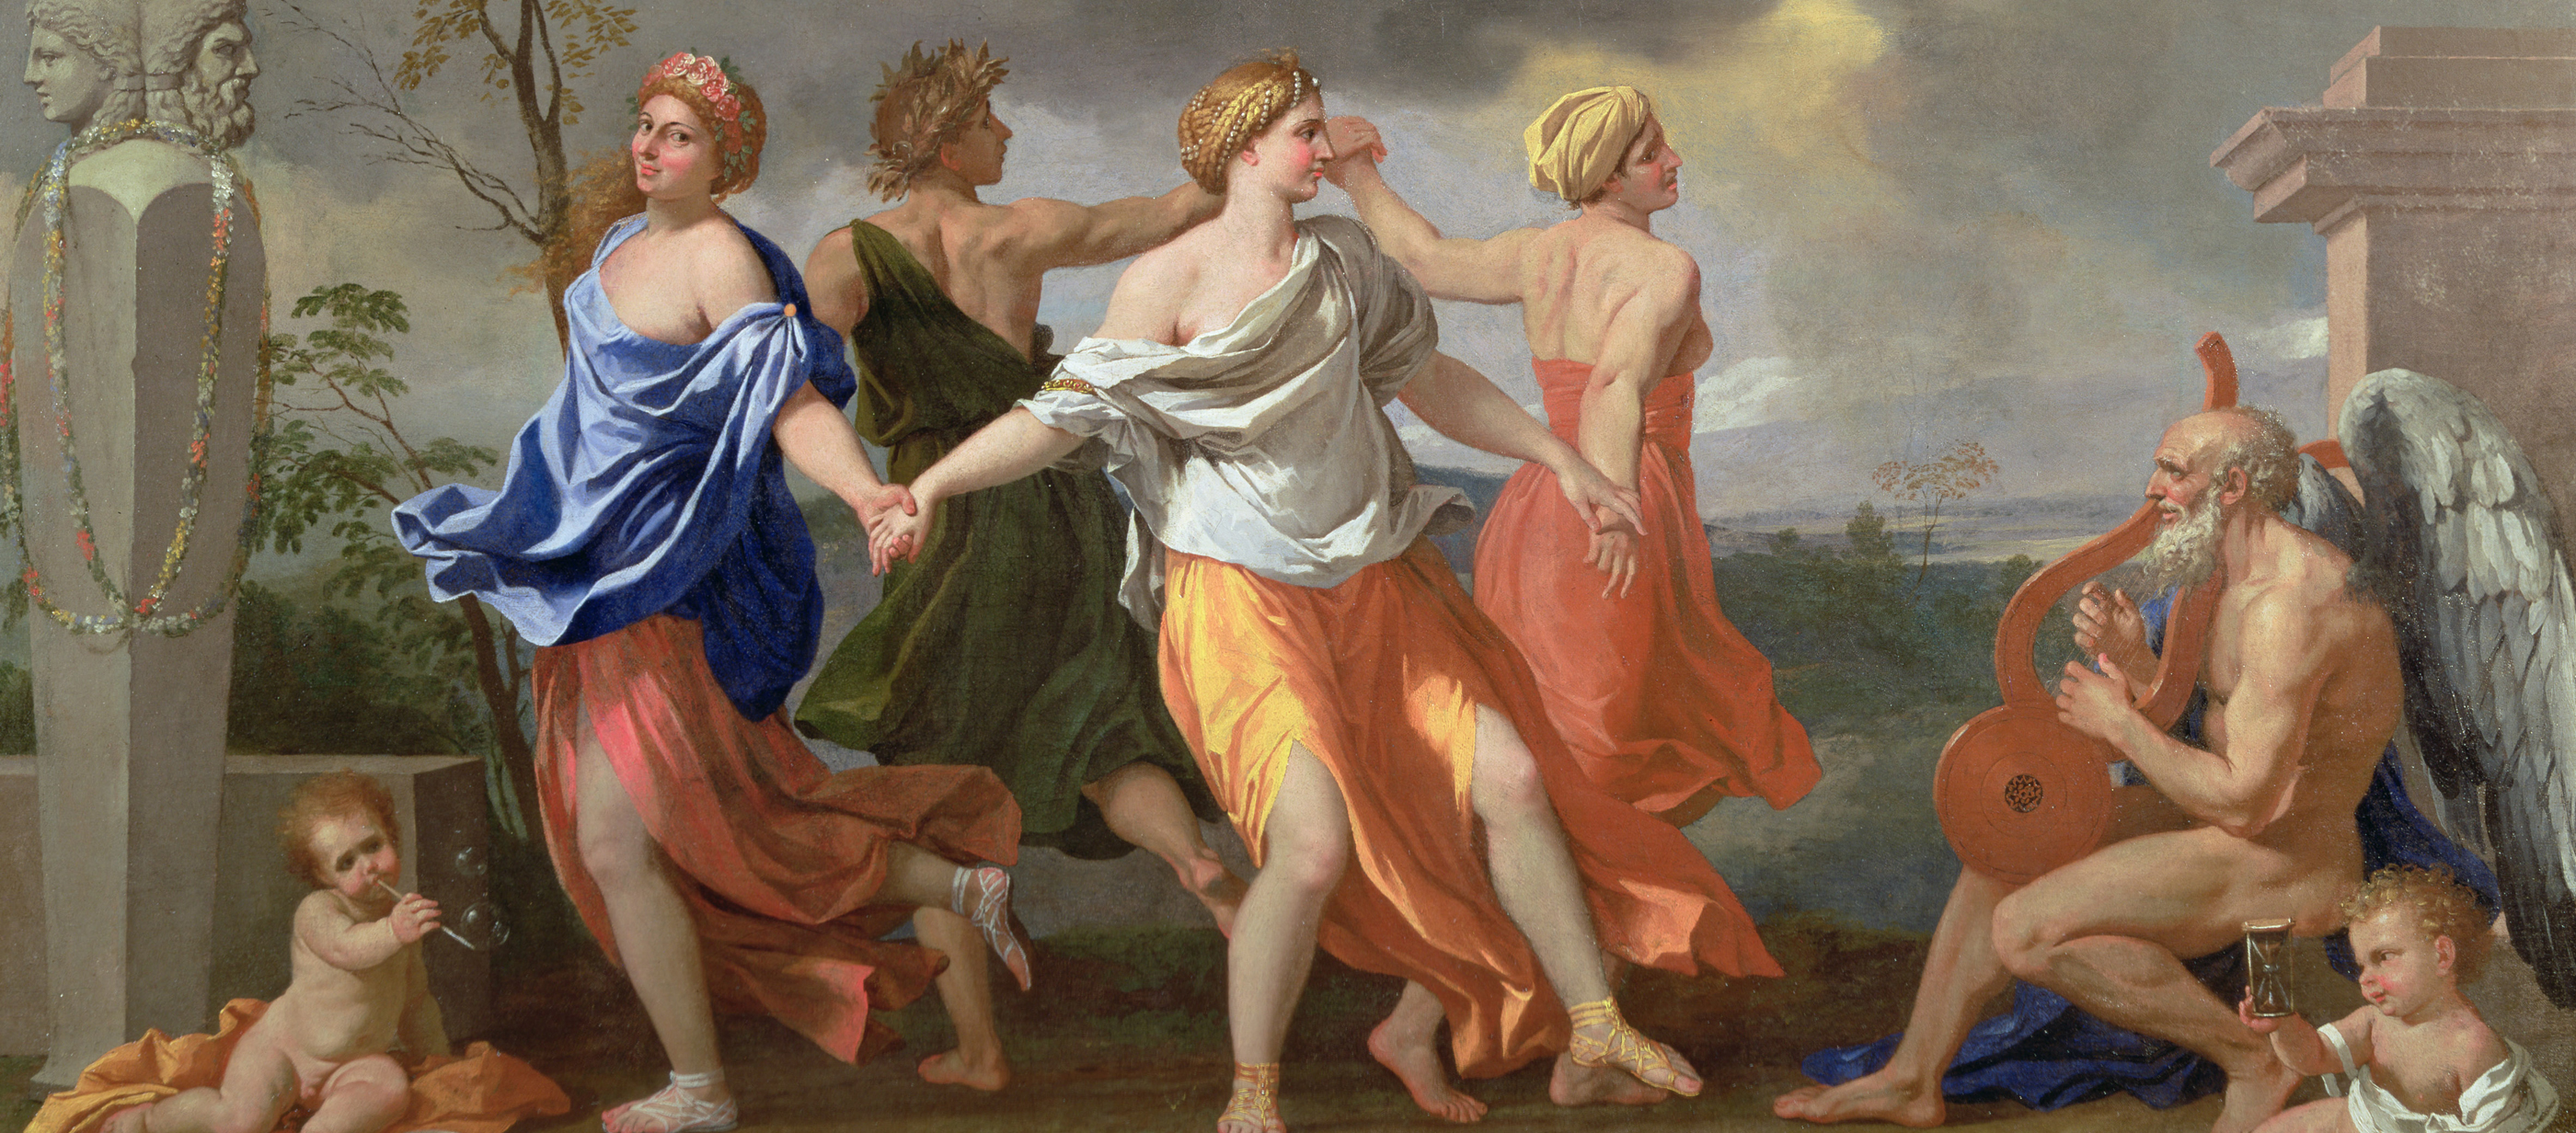 Four women dancing while Father Time looks on.